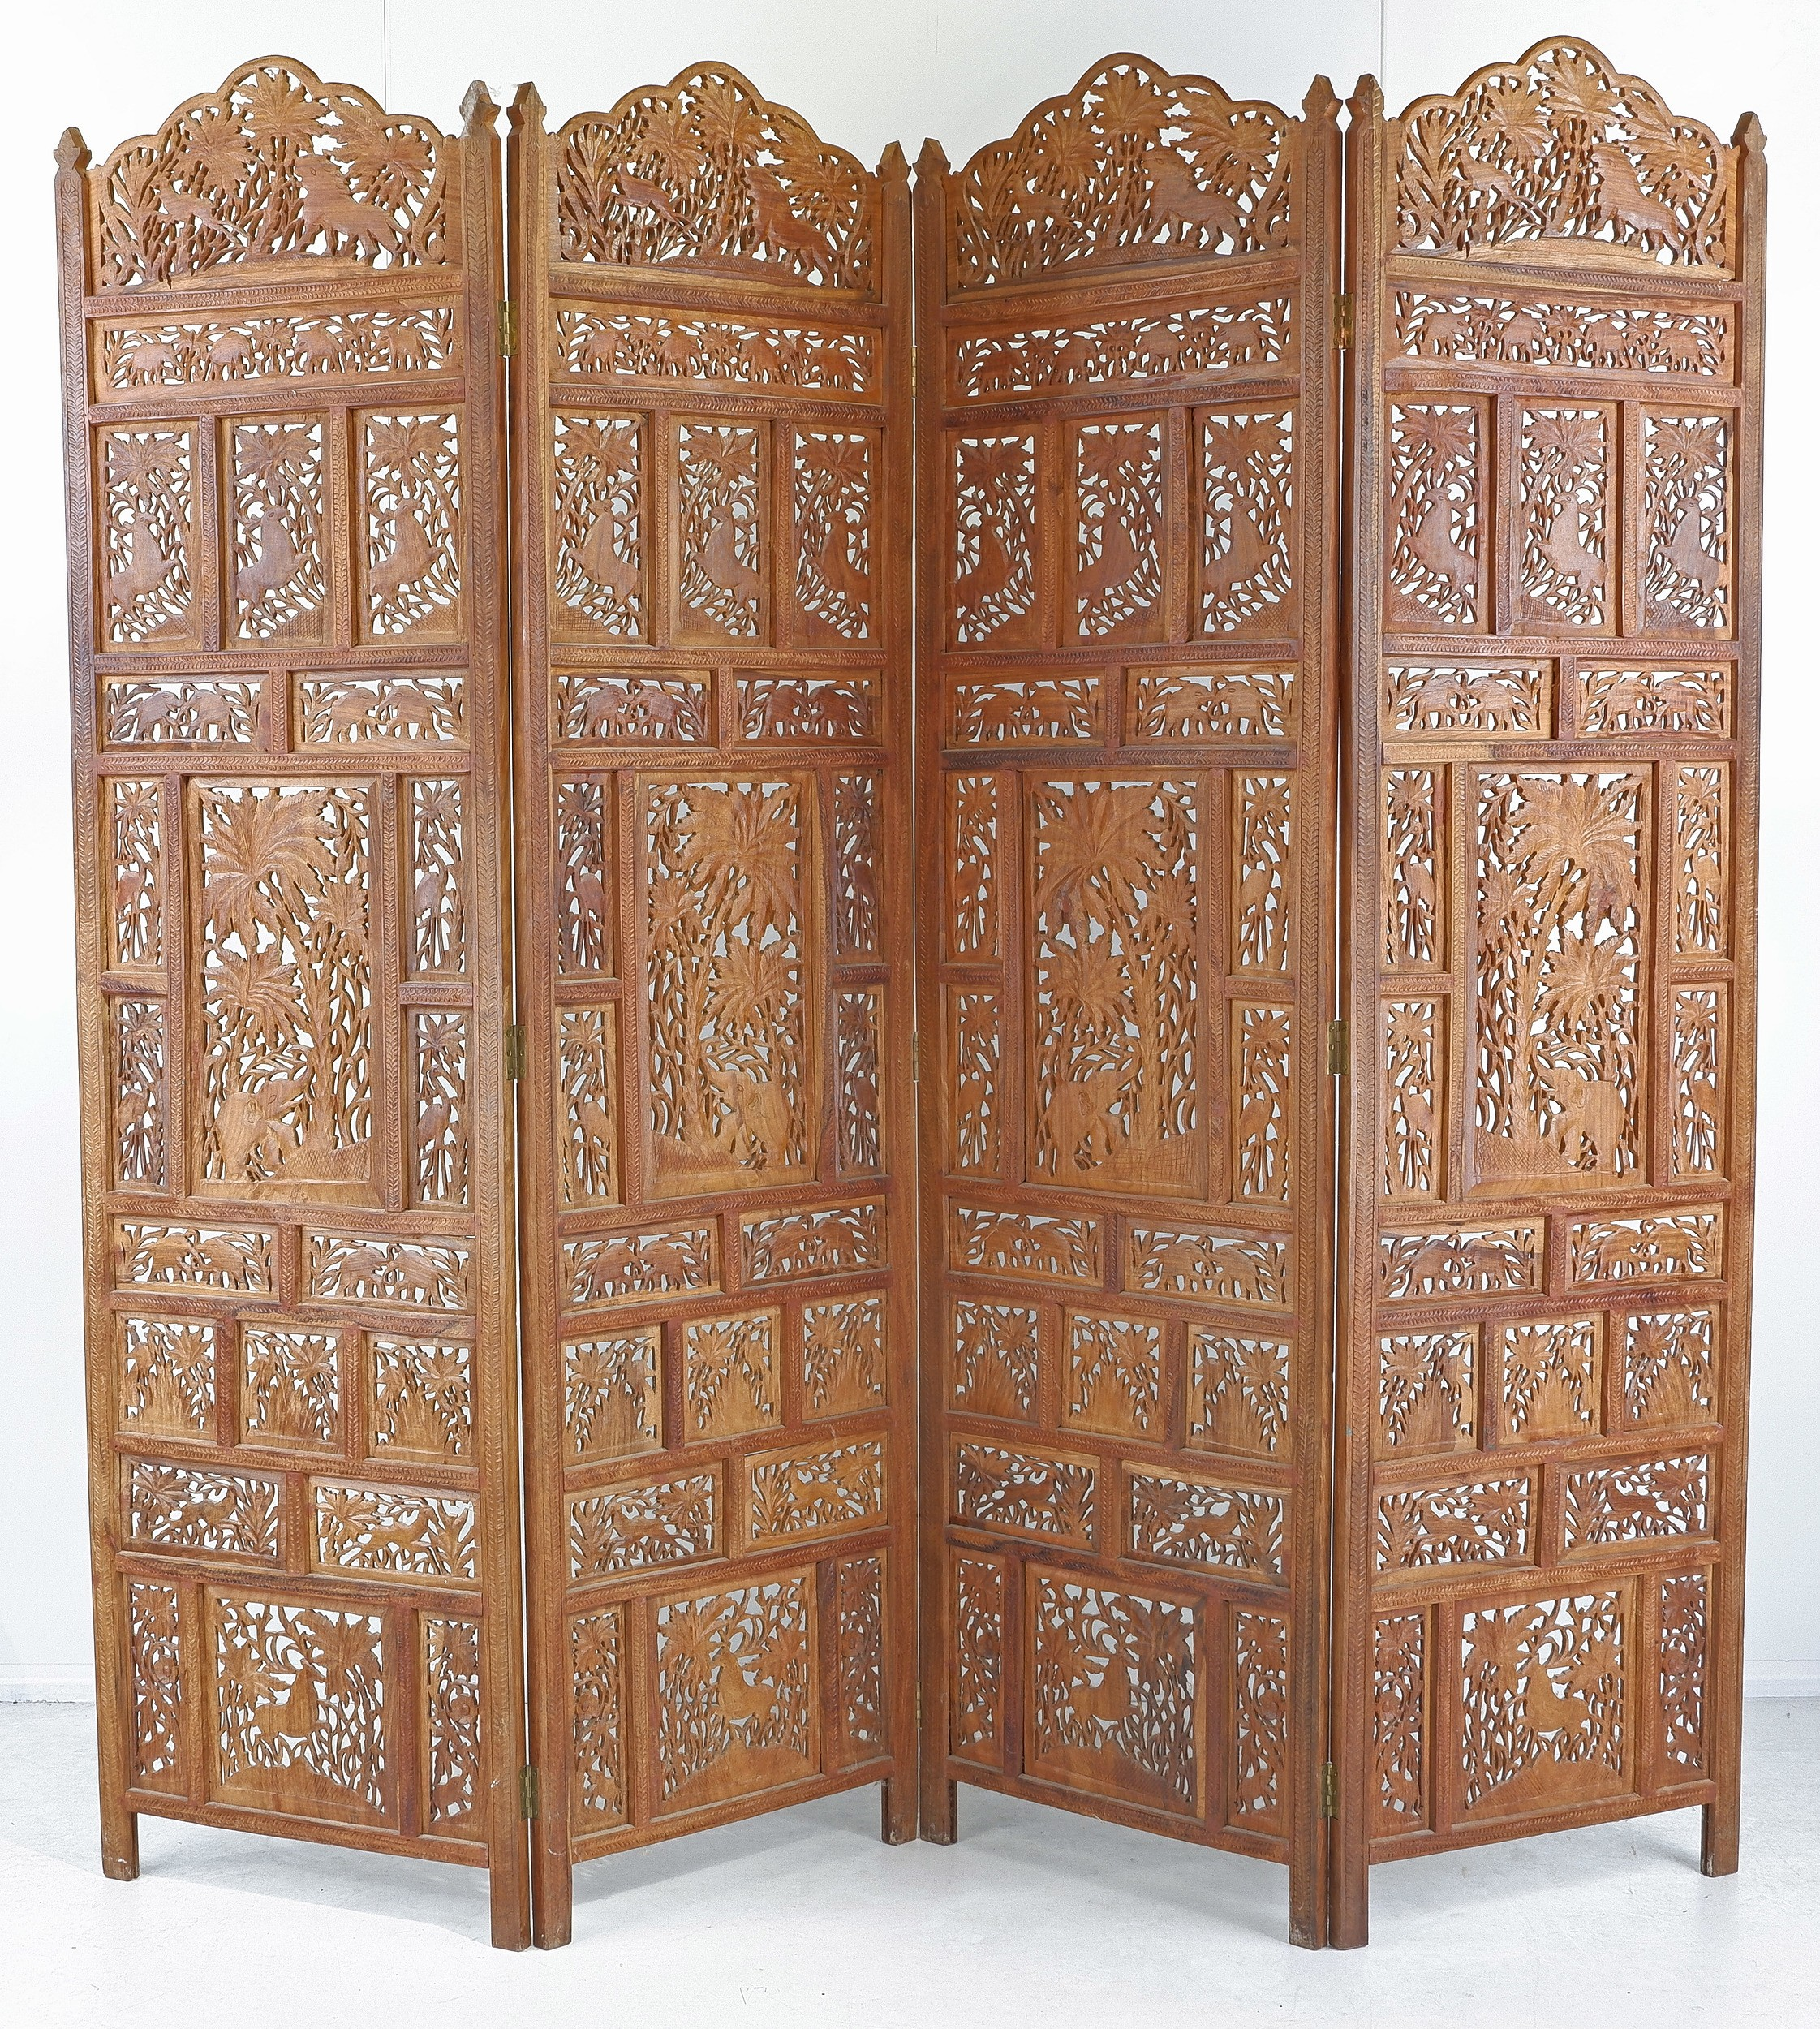 'South East Asian Carved and Pierced Teak Folding Screen'